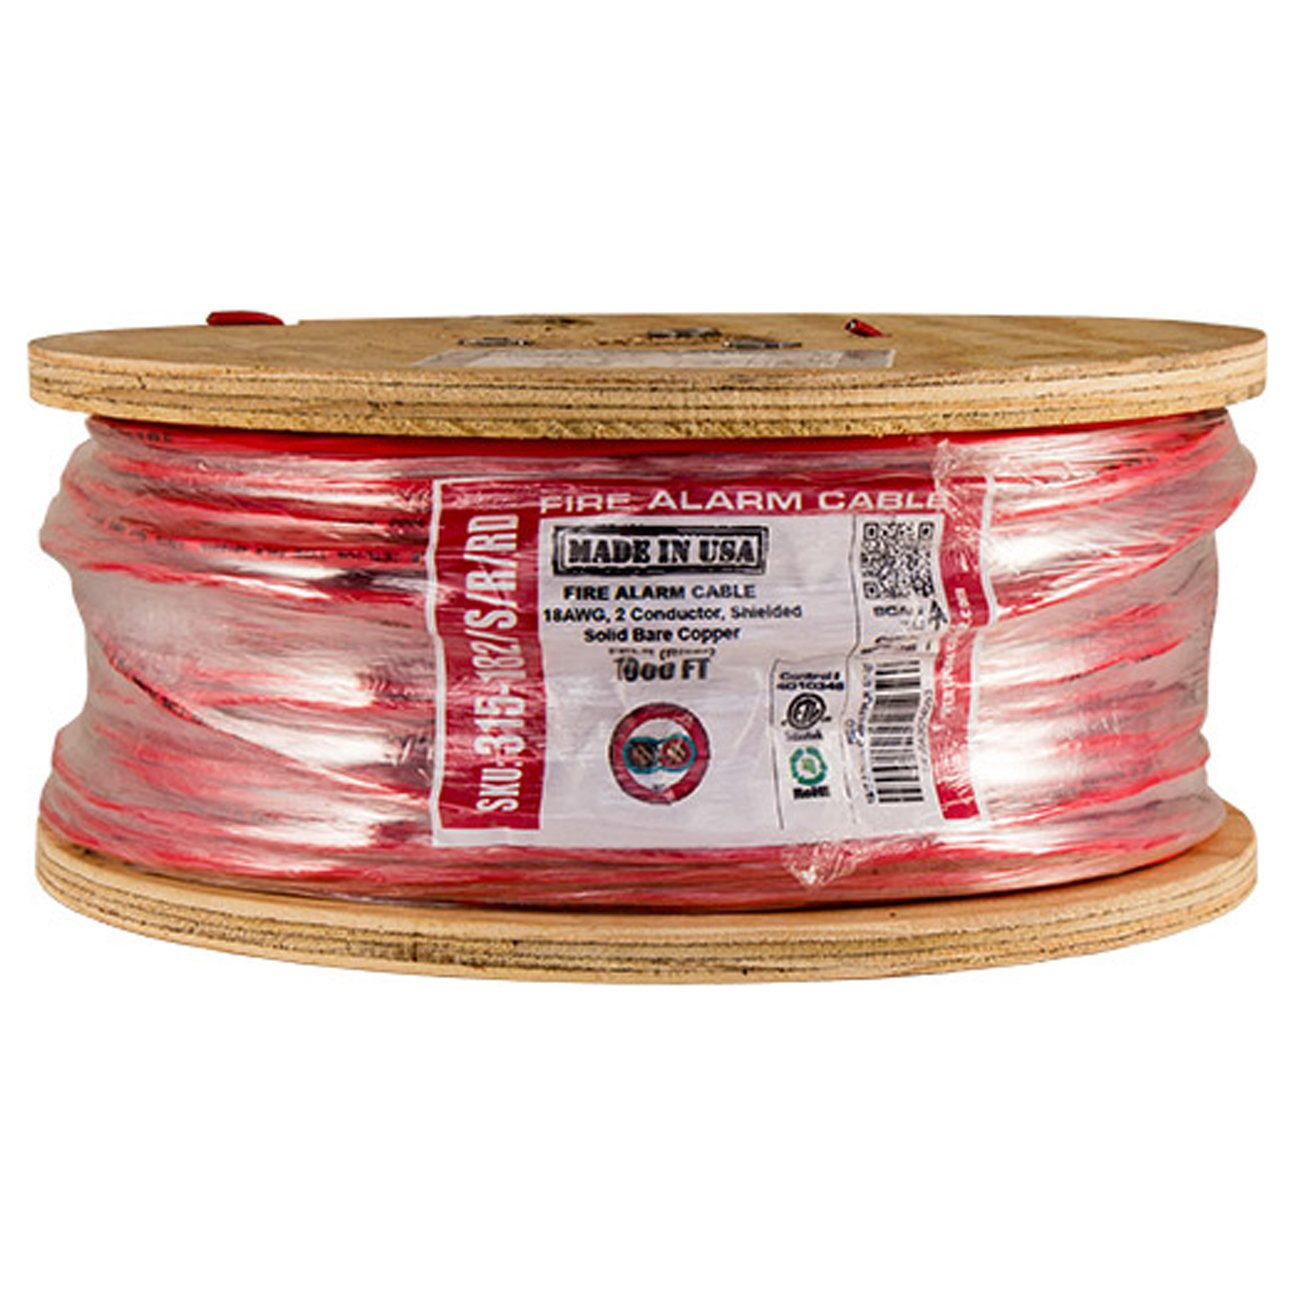 Vertical Cable Fire Alarm Cable, 18 AWG, 2 Conductor, Solid, Shielded, FPLR (Riser), 1000ft Spool, Red - Made in USA